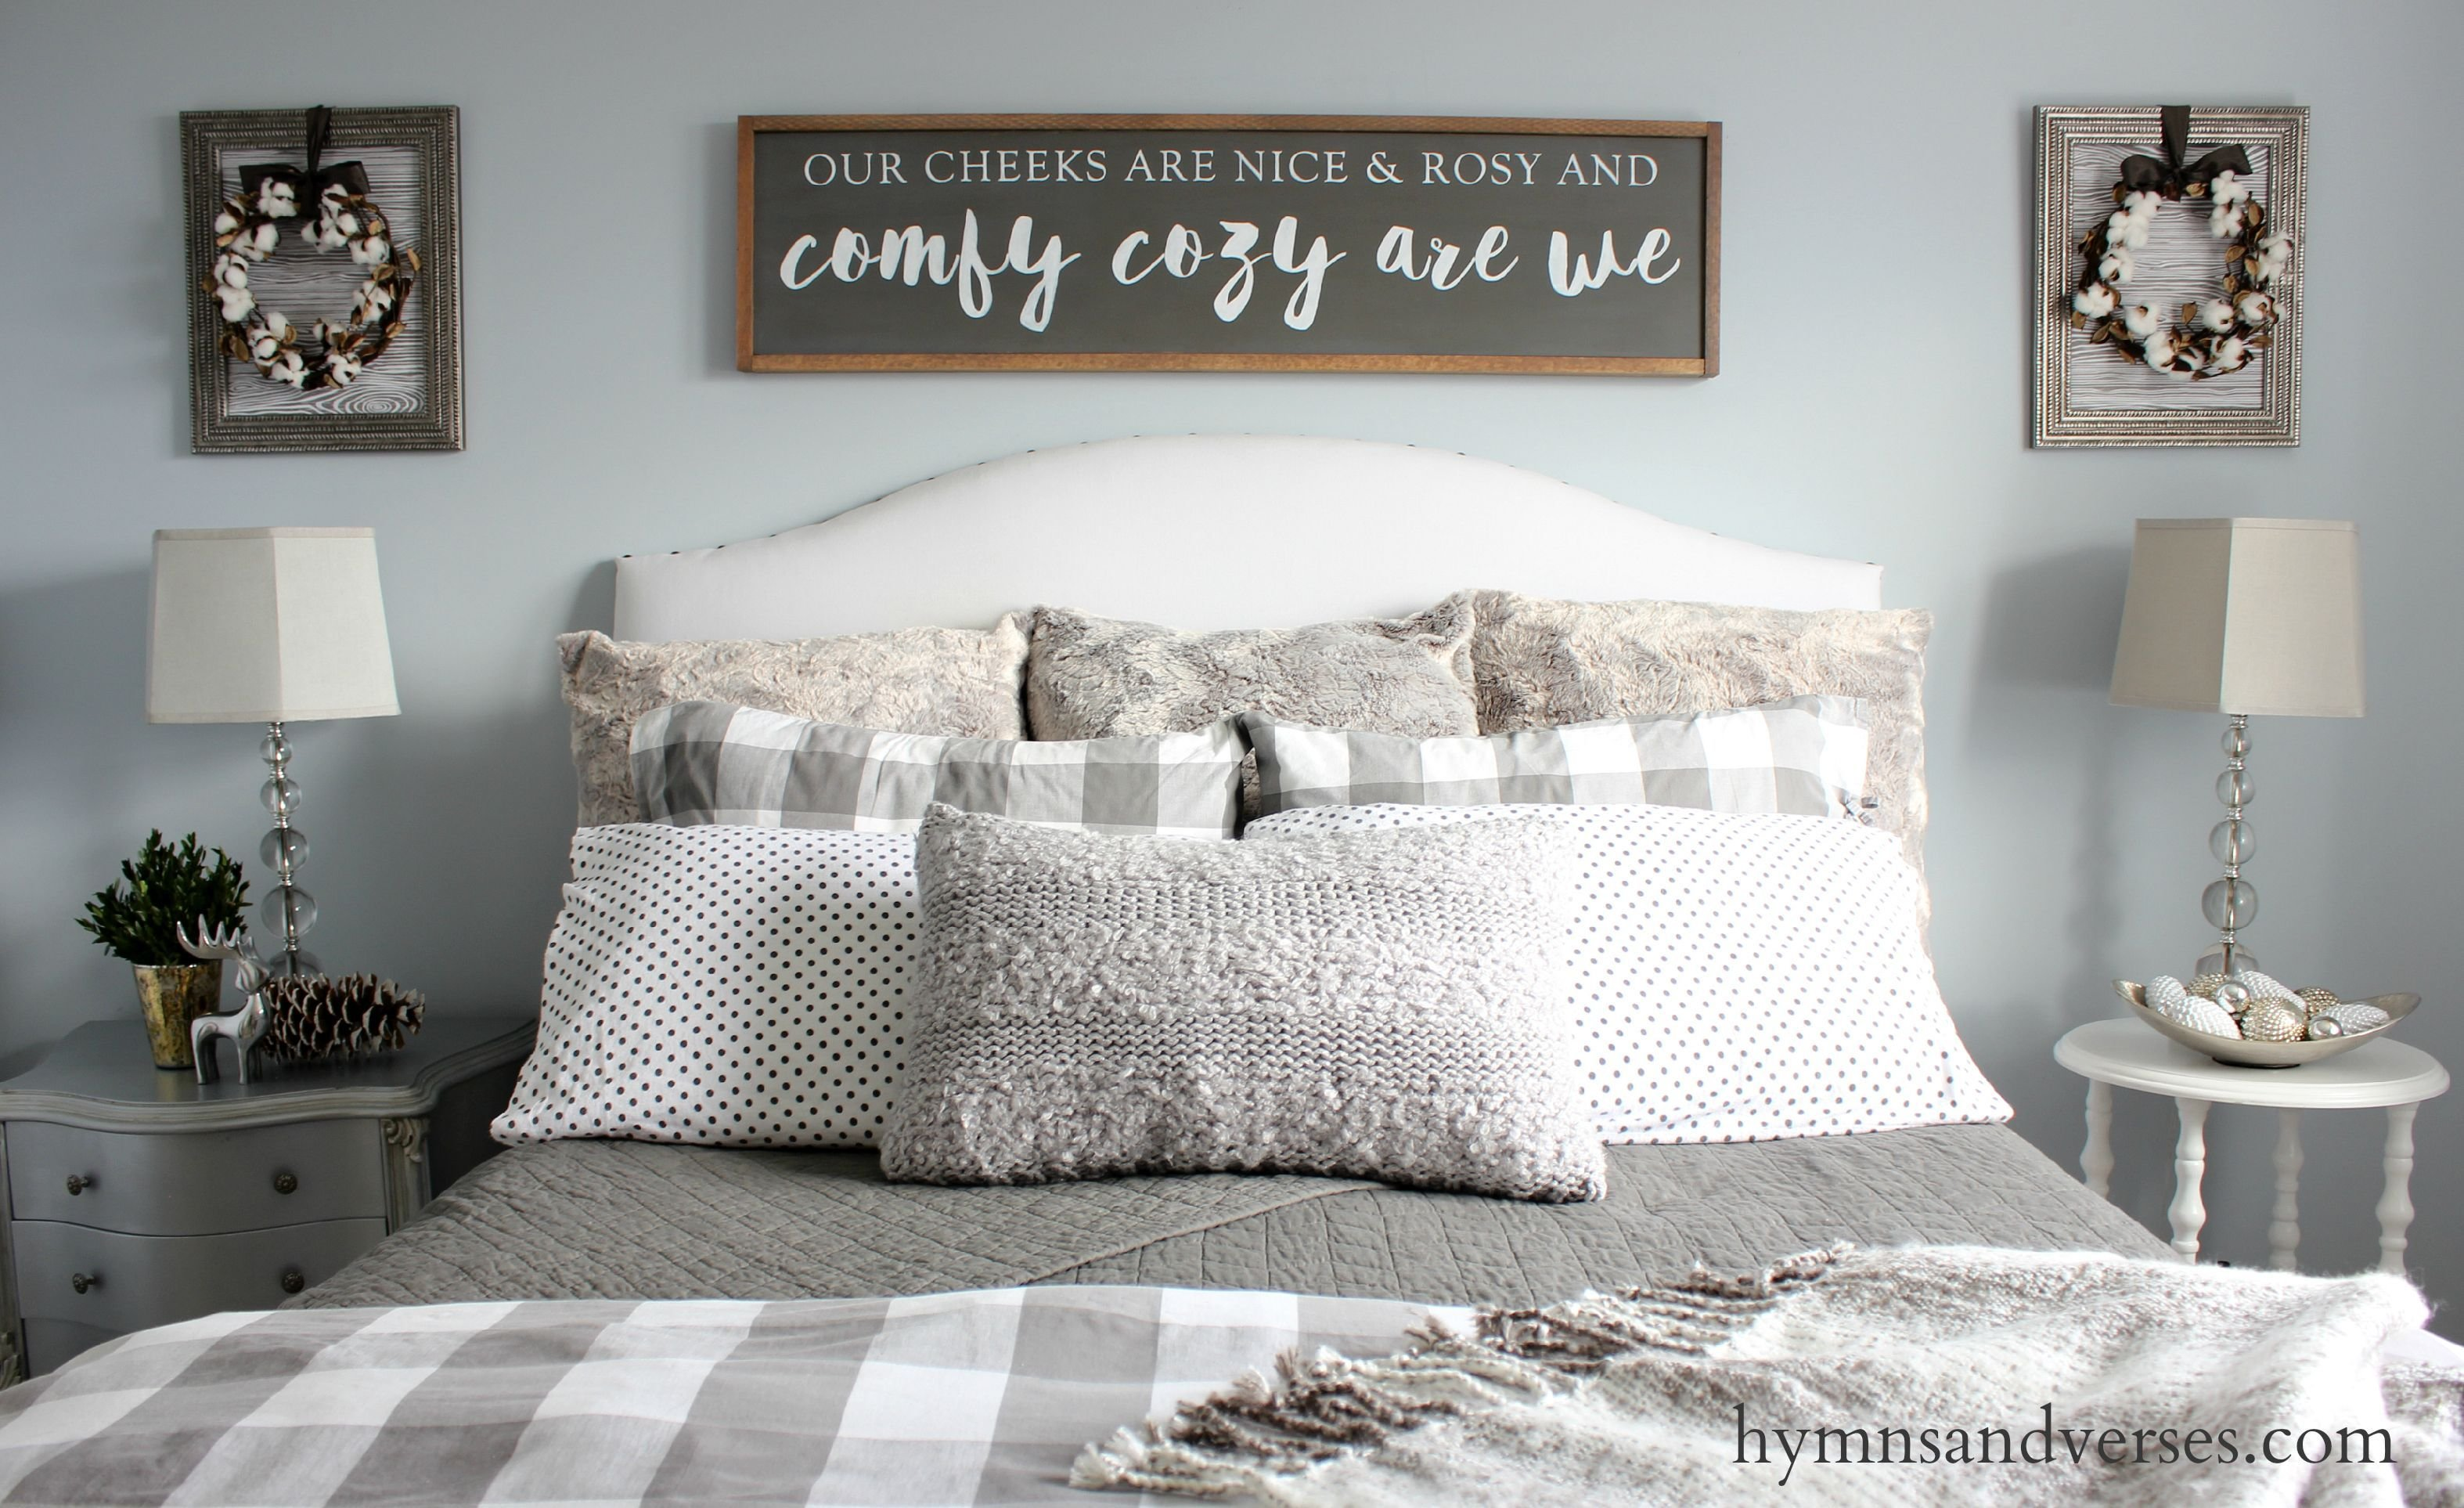 Best Comfy Cozy Winter Bedroom And New Sign It S A Sign With Pictures